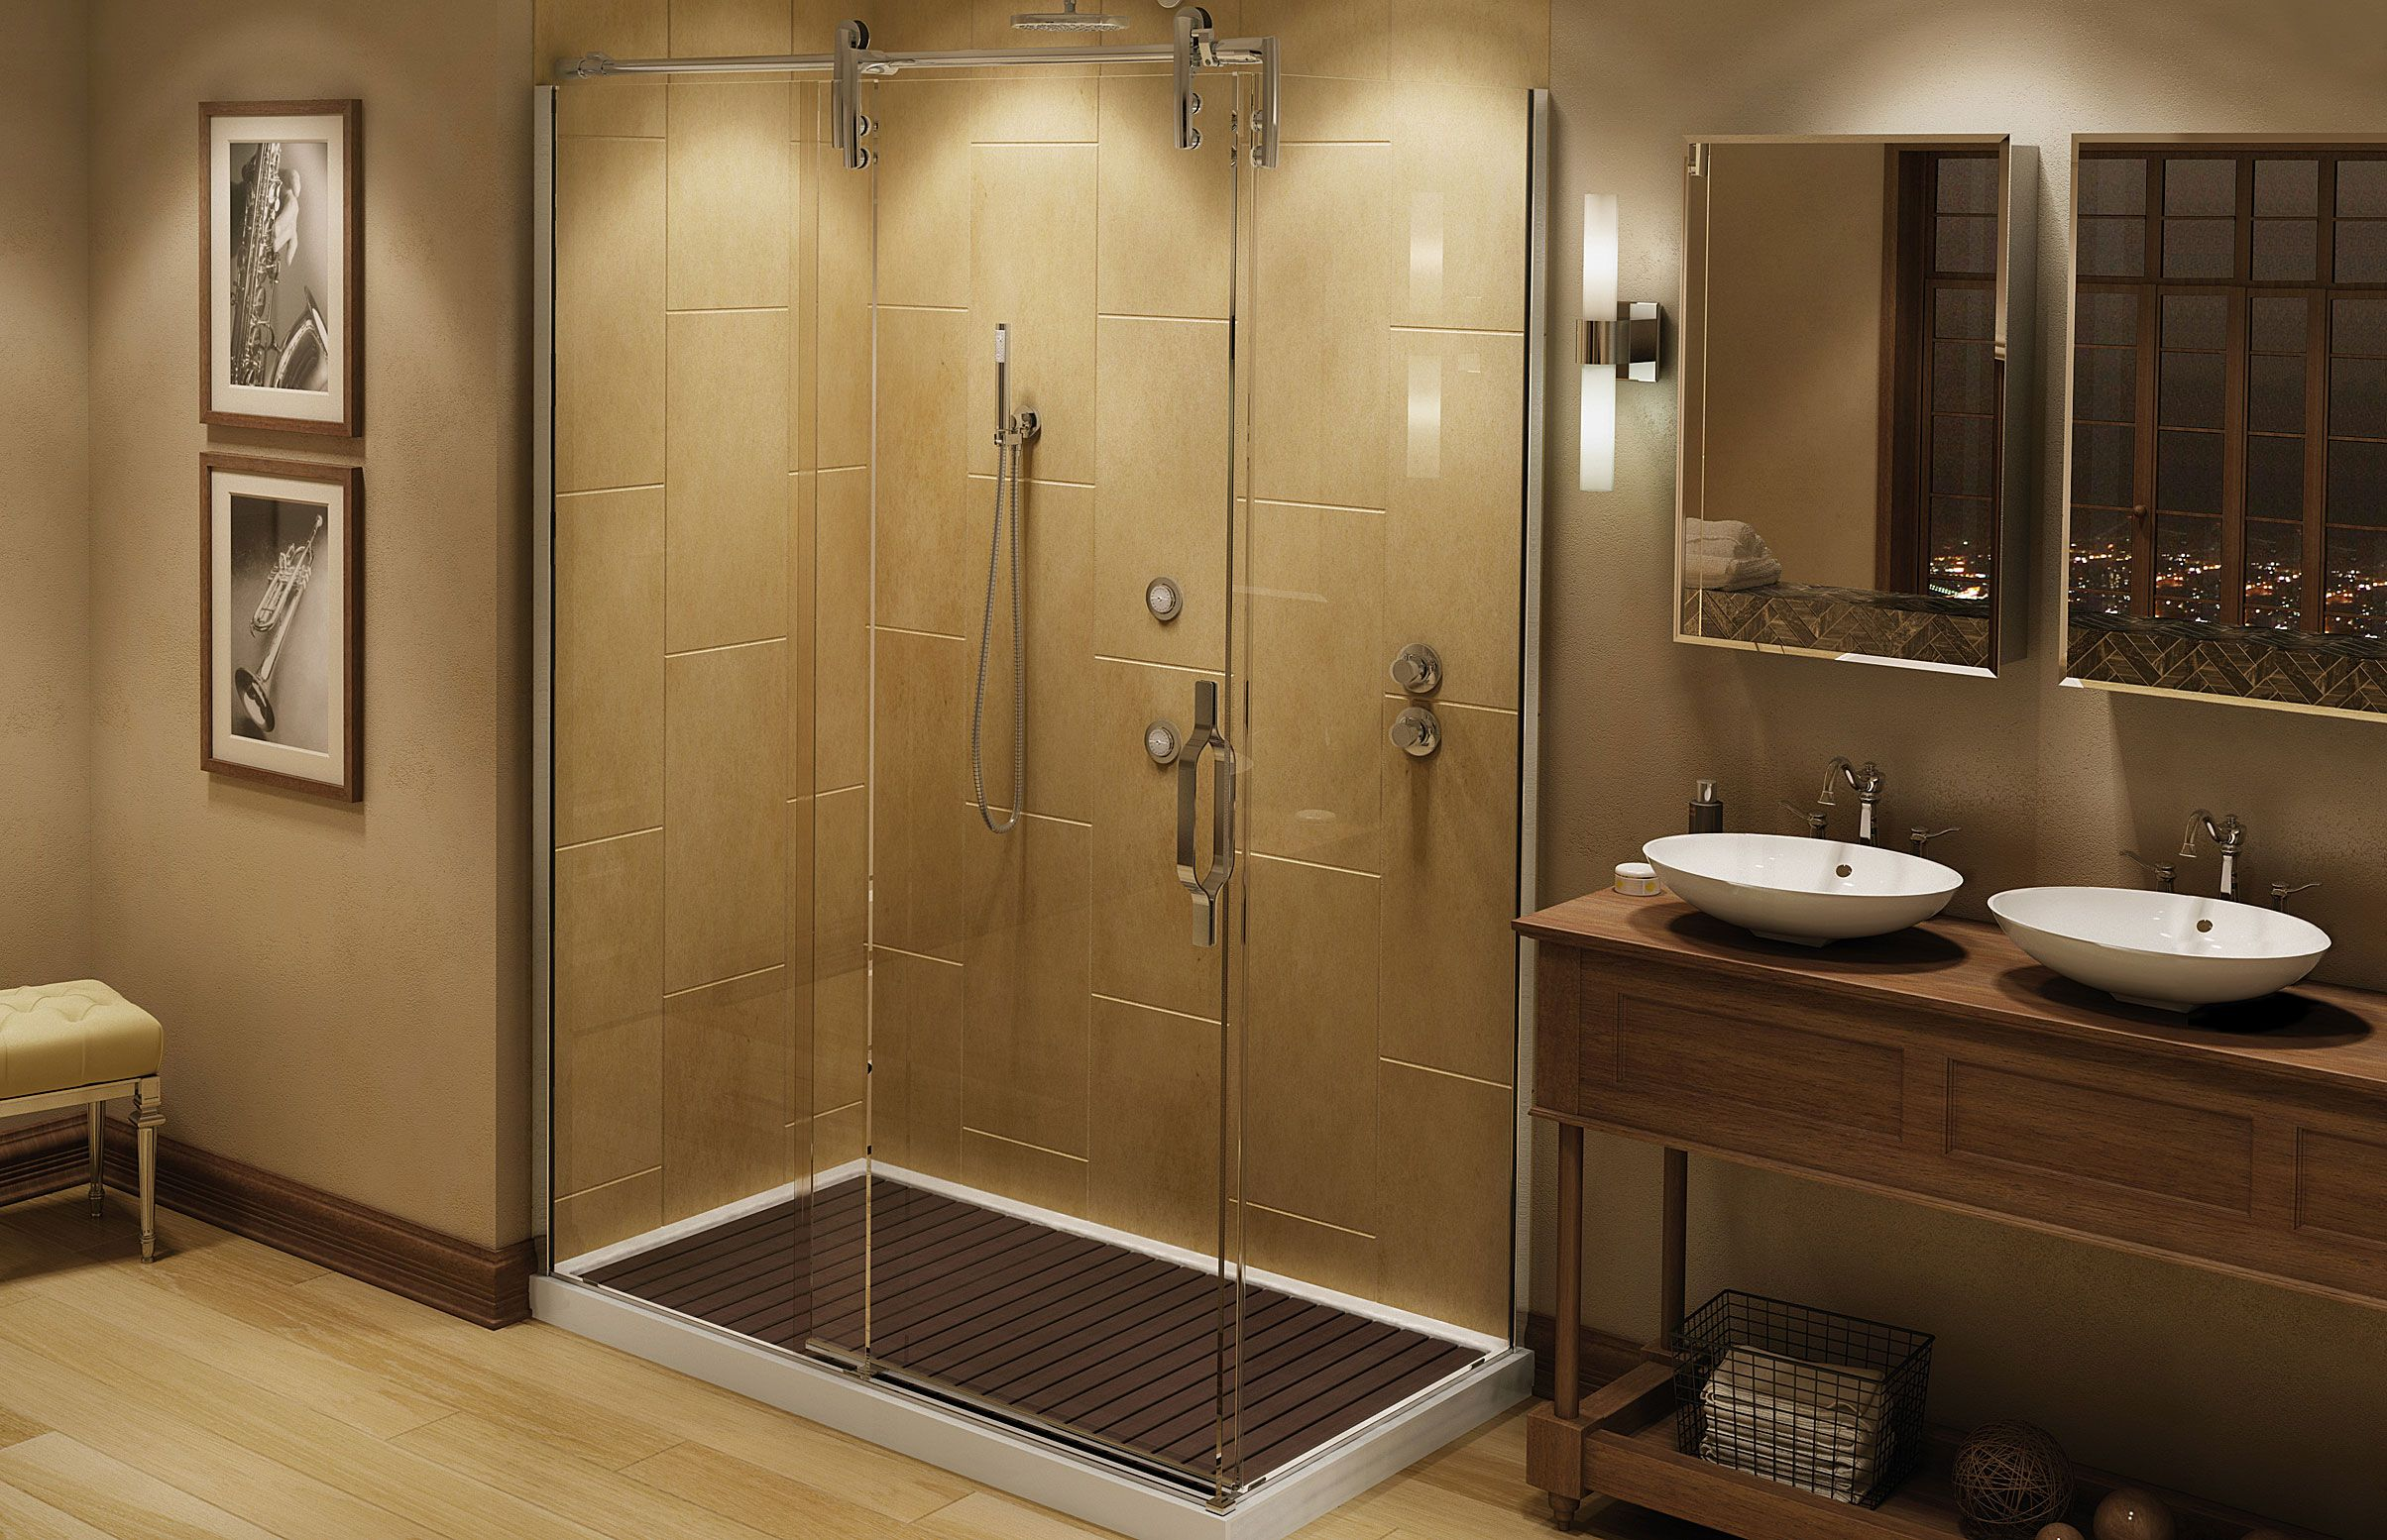 MAAX - Mechanix M2 Alcove Shower Door www.maax.com | Douches en ...